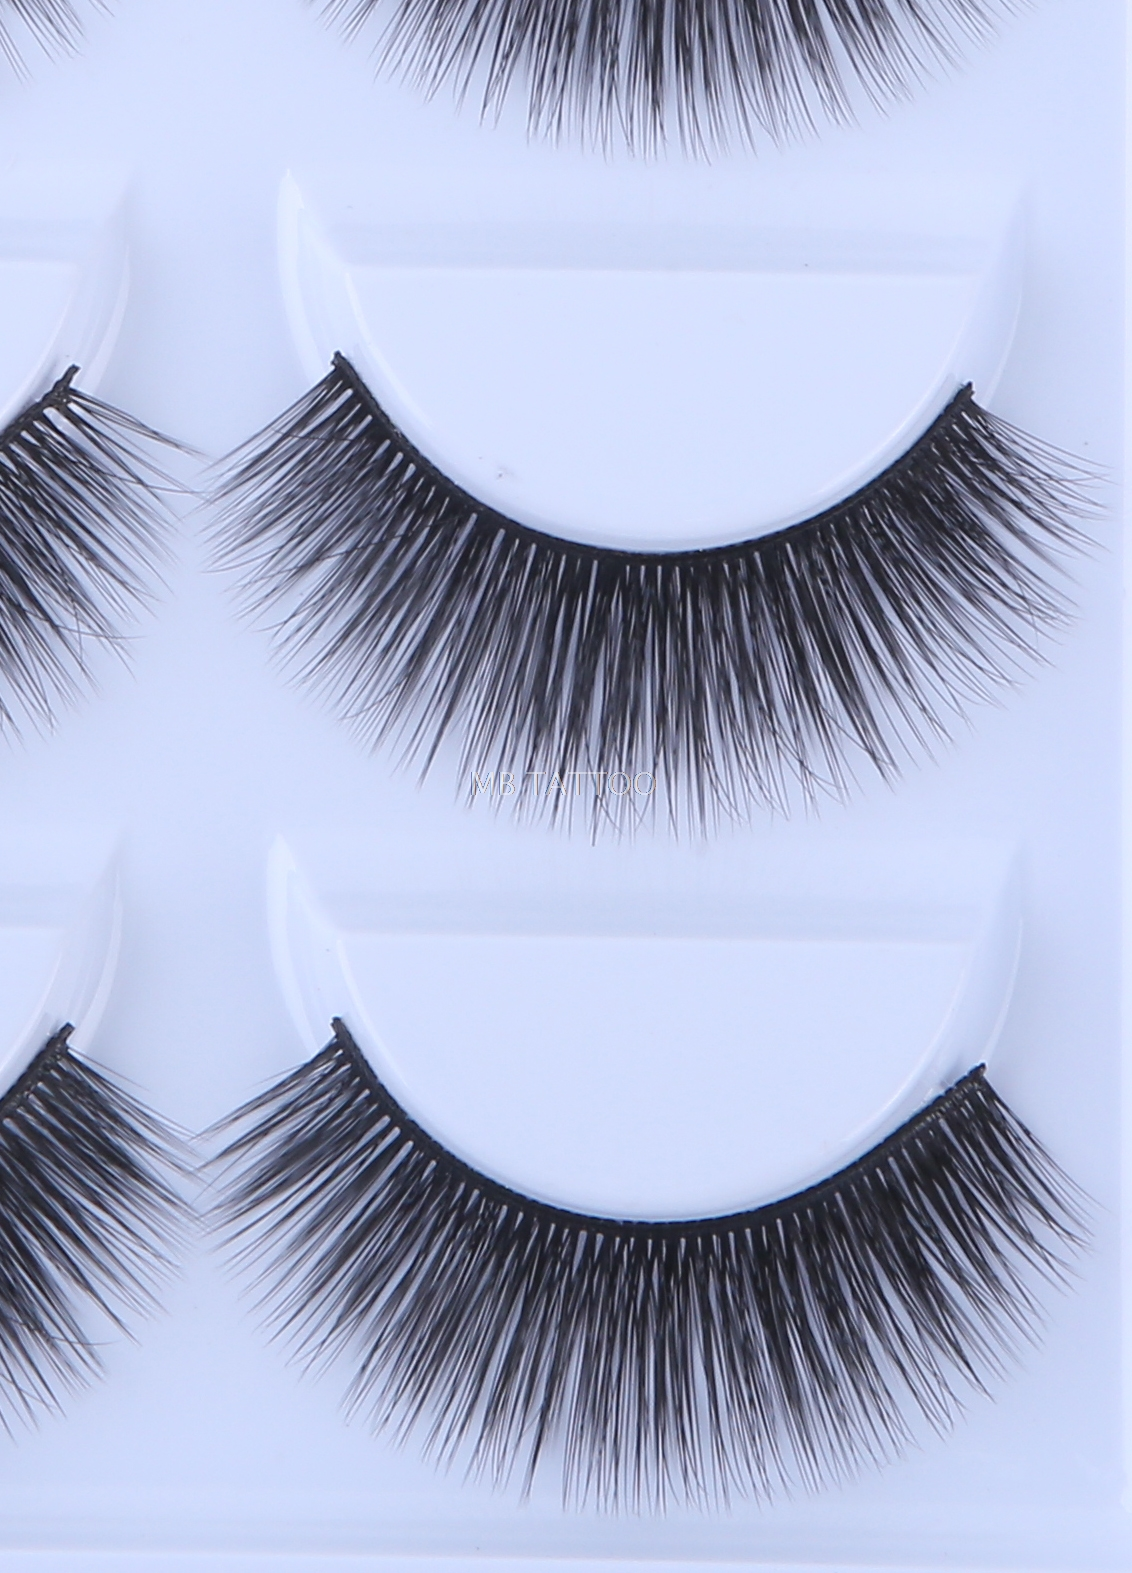 HTB1Ip35Q4YaK1RjSZFnq6y80pXa1 New 3D 5 Pairs Mink Eyelashes extension make up natural Long false eyelashes fake eye Lashes mink Makeup wholesale Lashes